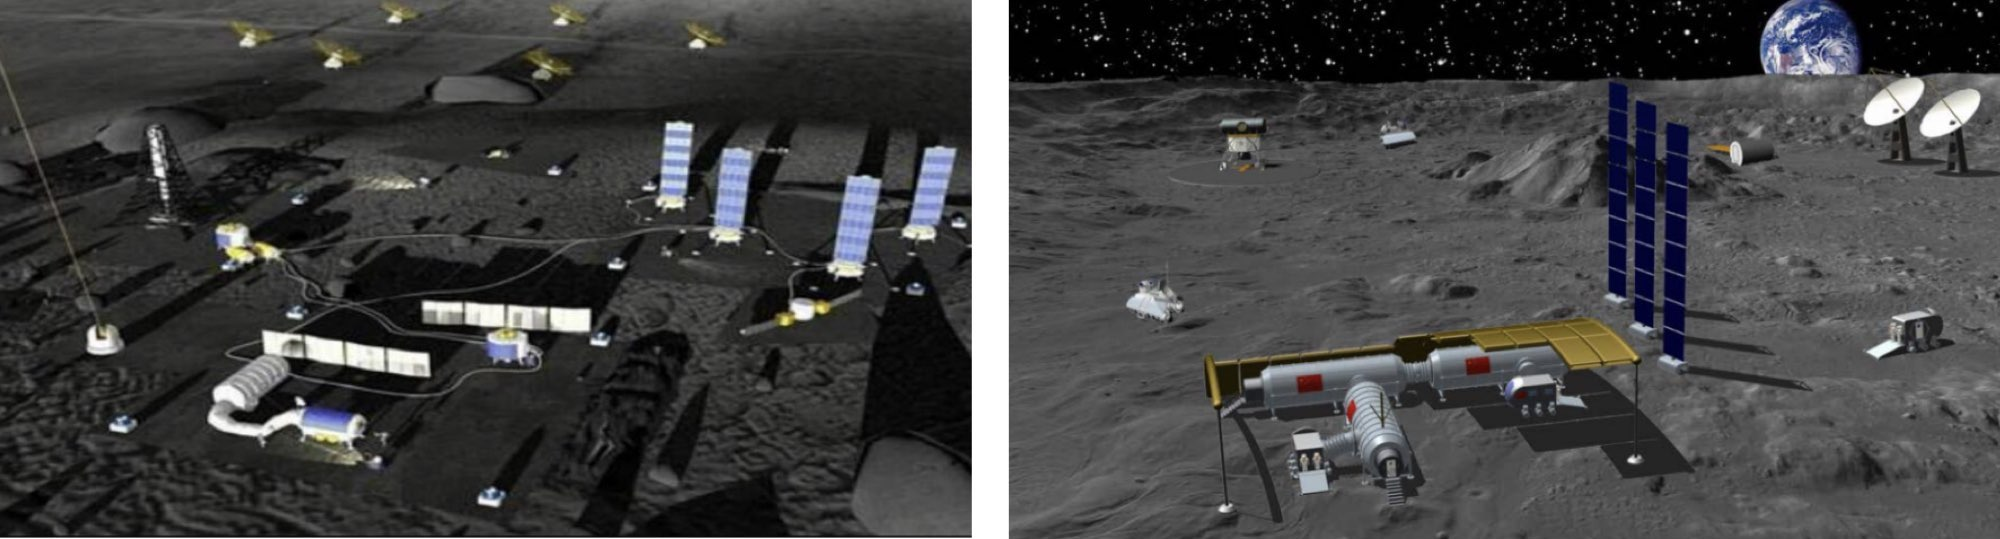 Illustrations du concept de l'International Lunar Research Station (ILRS). Crédit : CNSA/CLEP/CAST